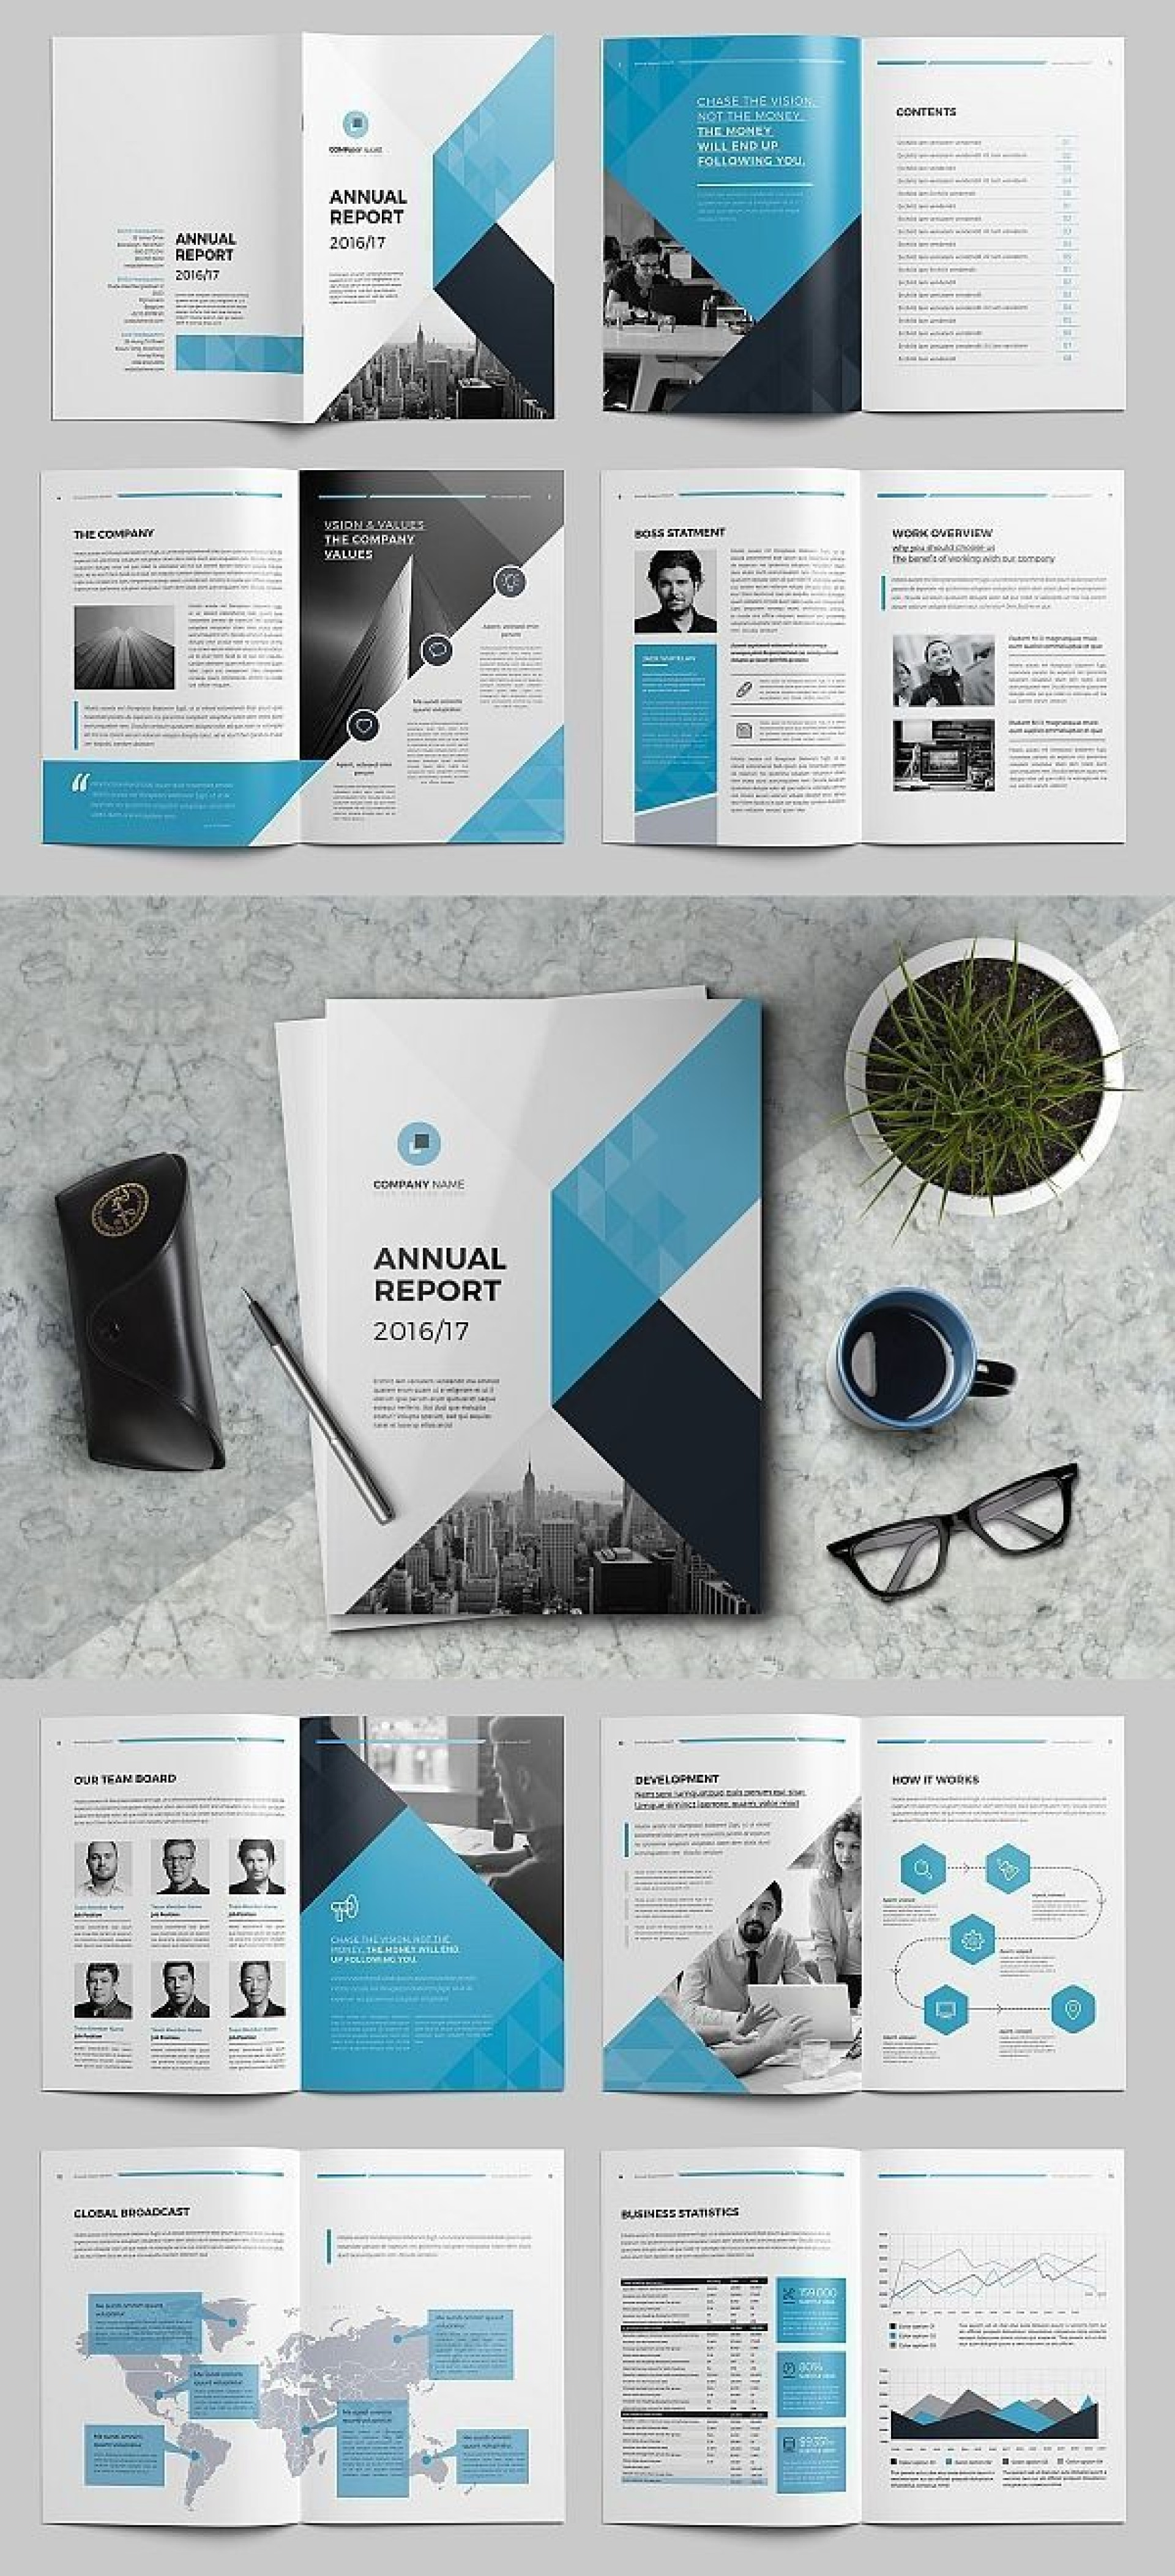 000 Awesome Free Adobe Indesign Annual Report Template Image 1920